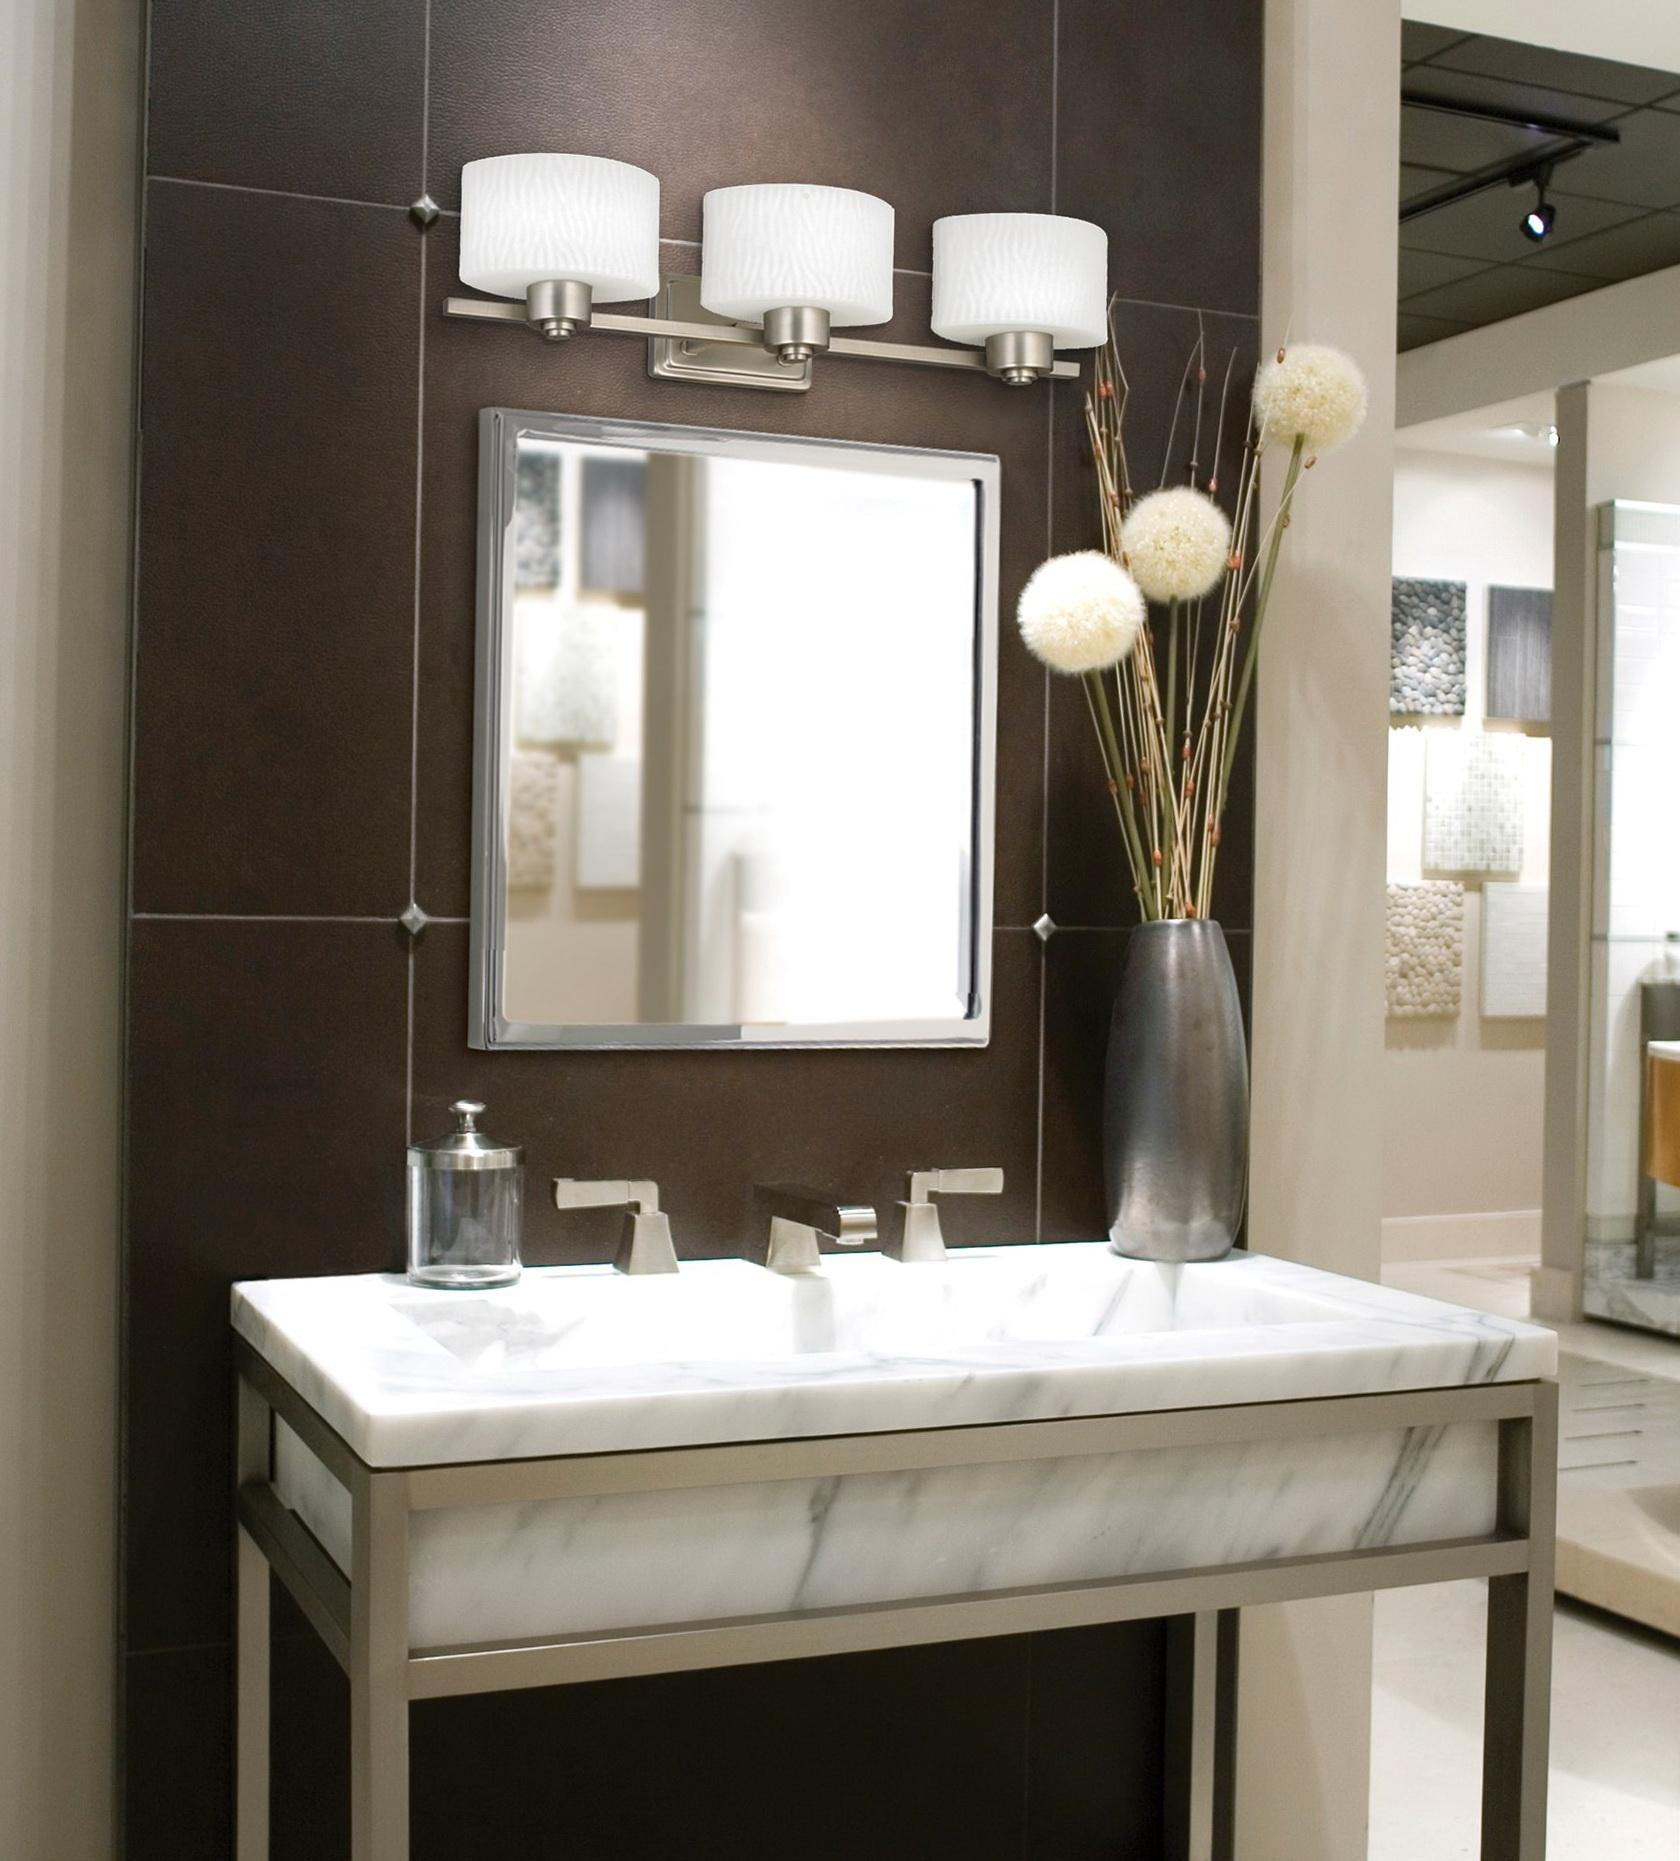 Wondrous Bathroom Vanity Mirrors For Com Ideas Brushed Nickel Pertaining To Bathroom Vanities Mirrors (Image 20 of 20)